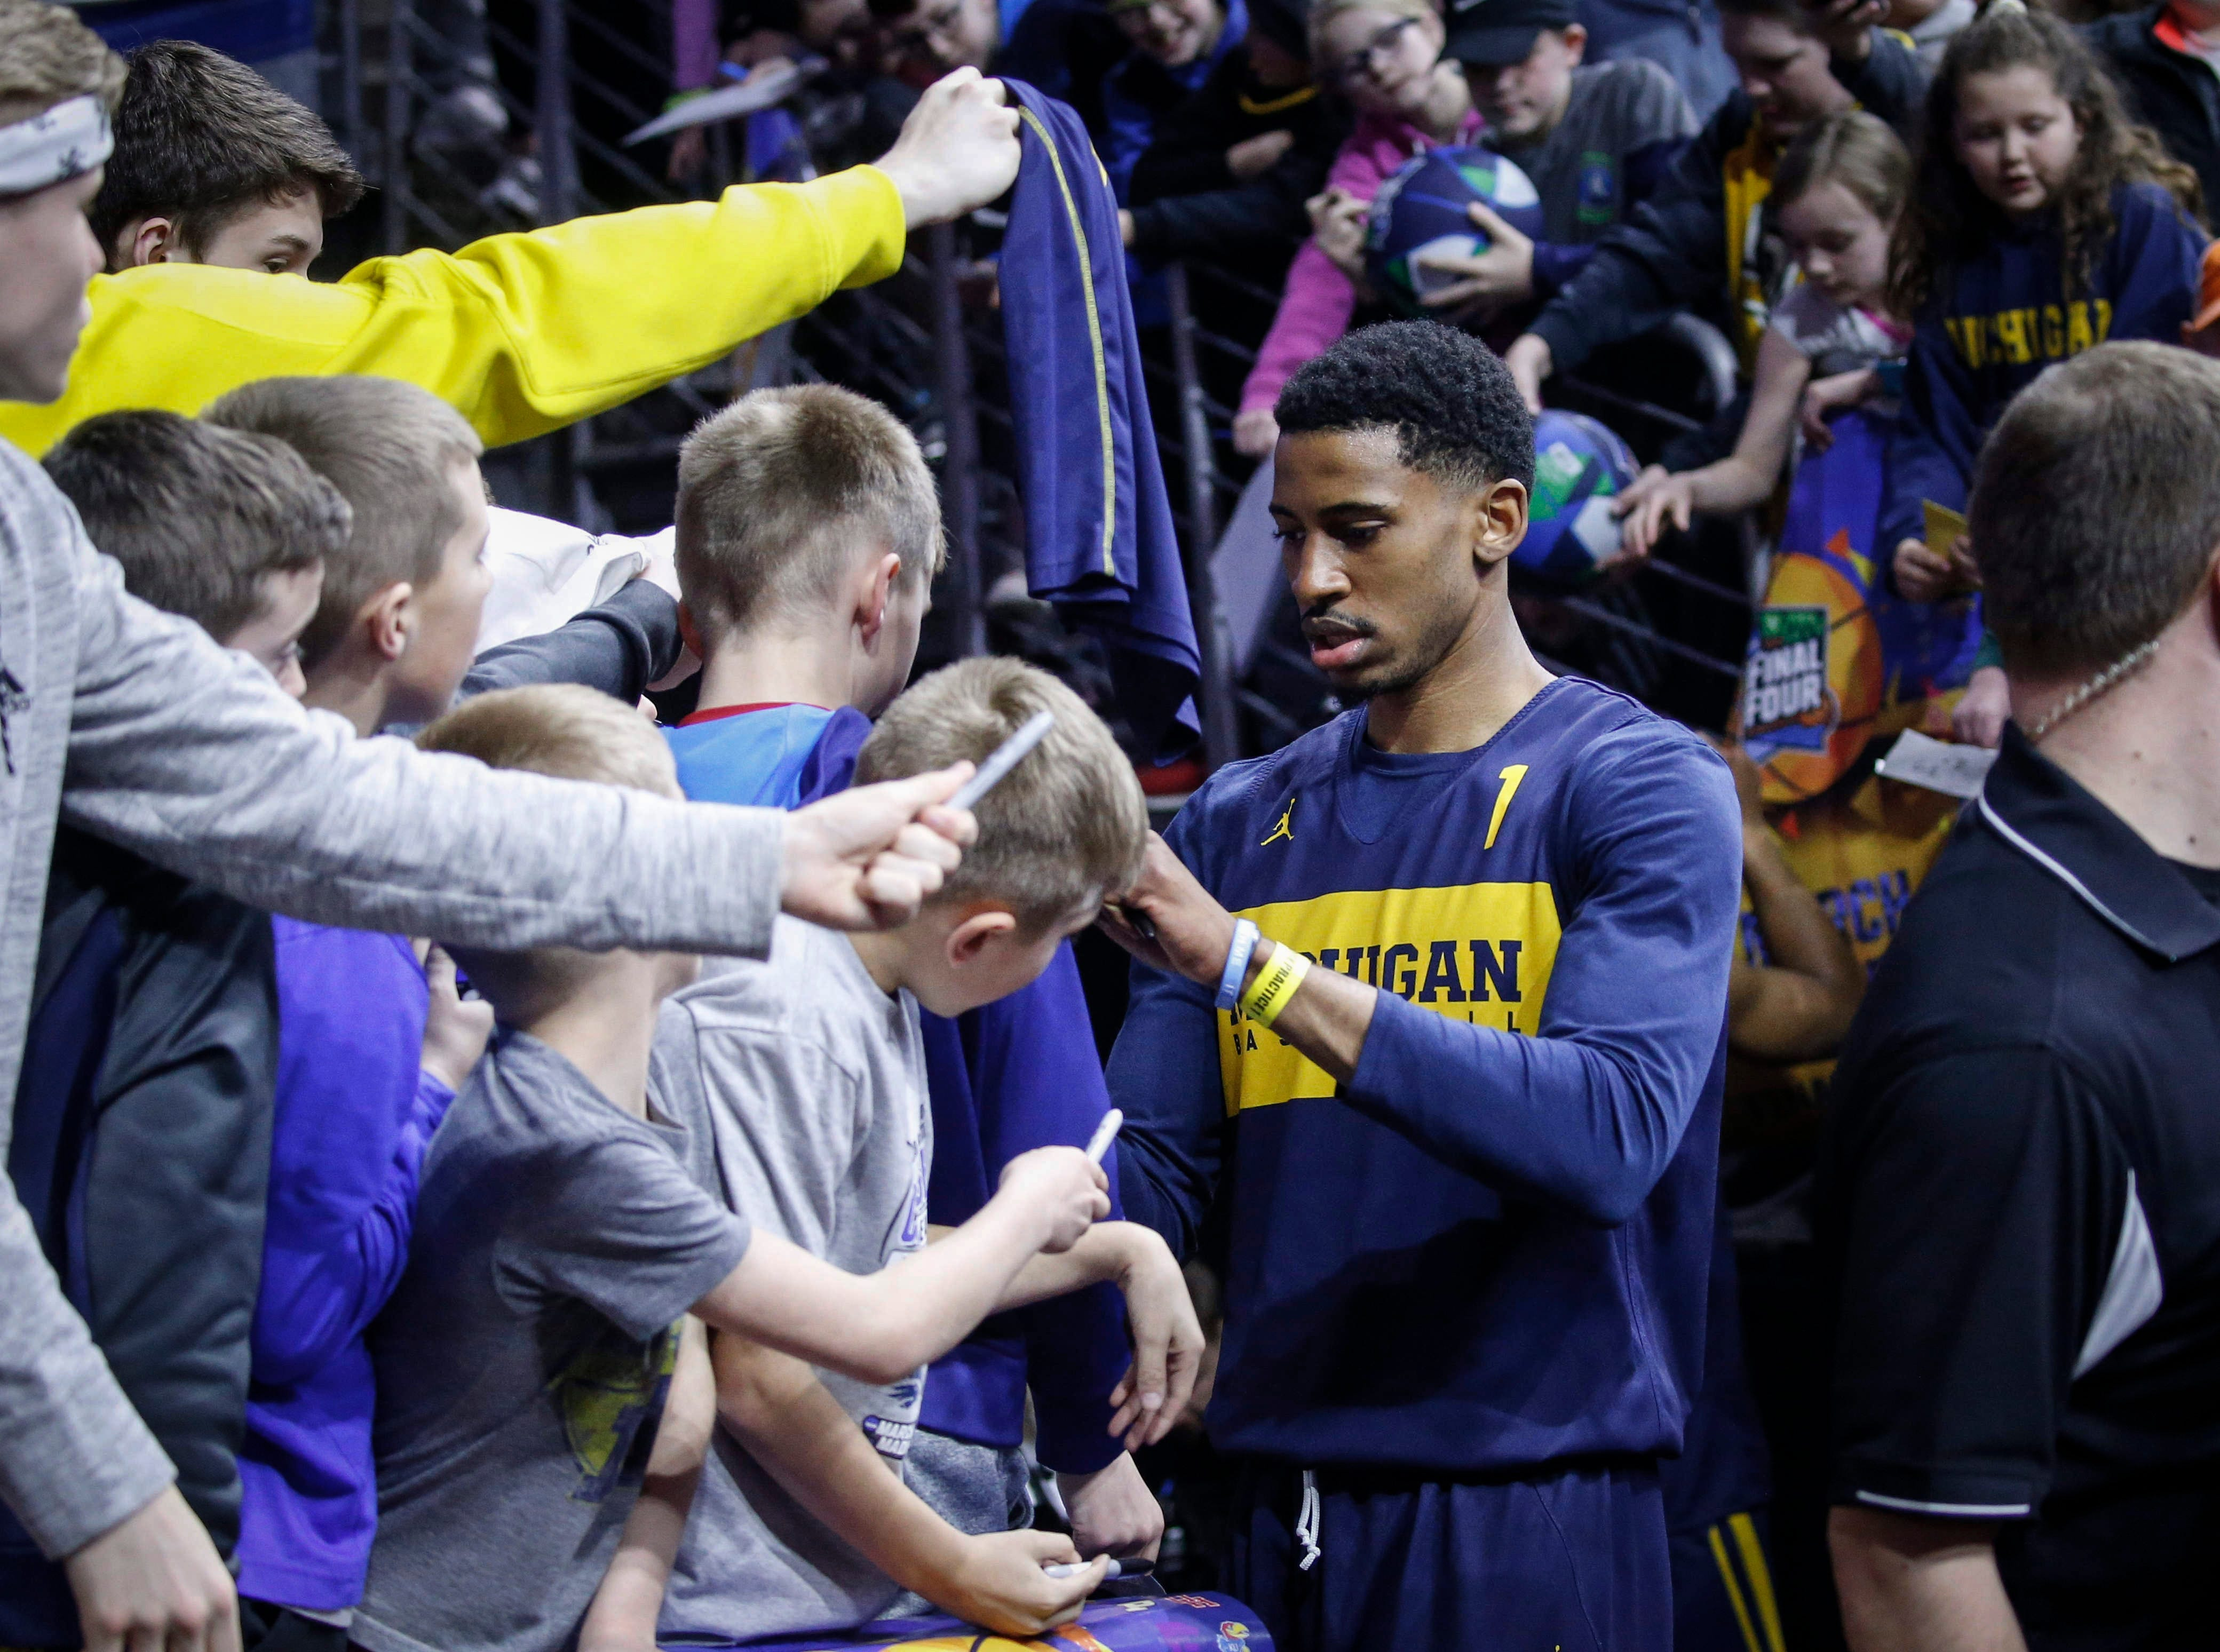 Michigan senior Charles Matthews signs autographs for fans after practice on Wednesday, March 20, 2019, at Wells Fargo Arena in Des Moines, Iowa.